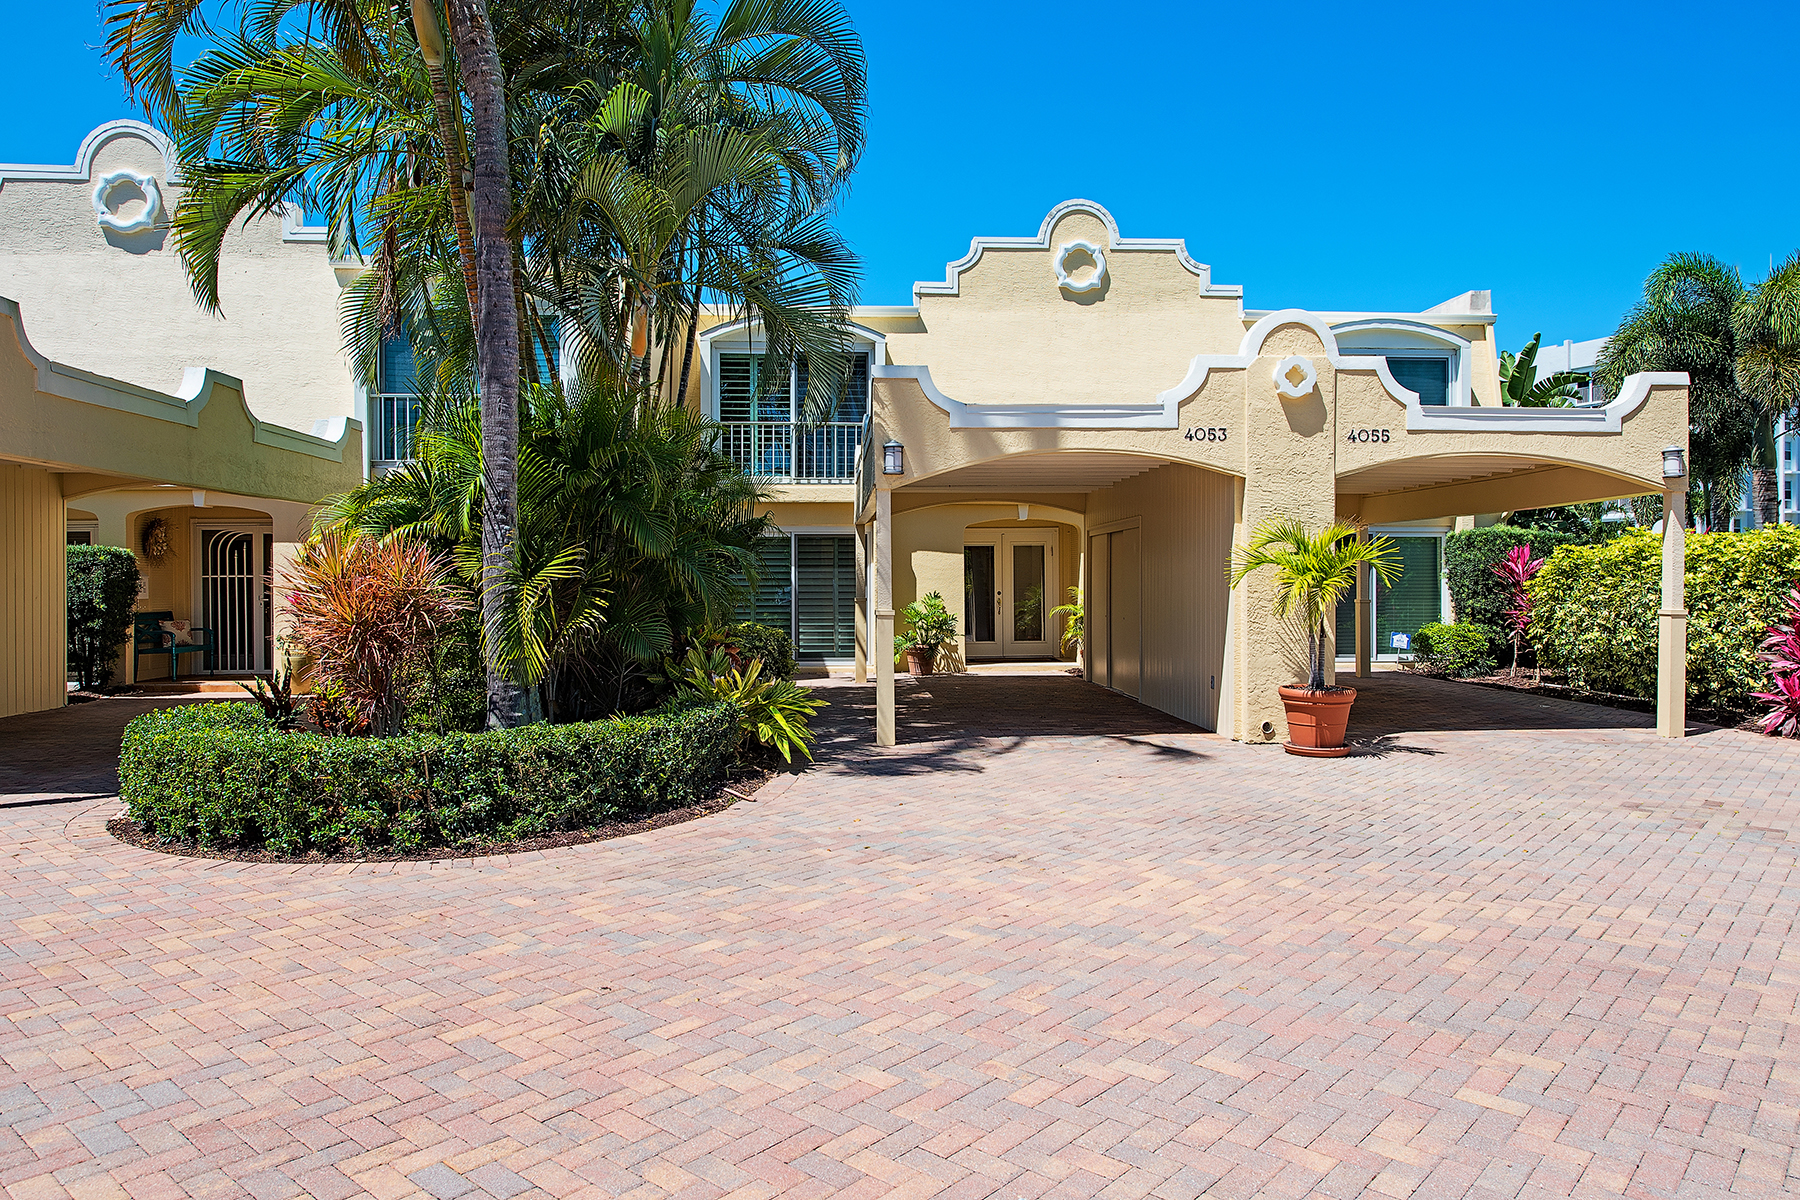 open-houses property at PARK SHORE - COLONY GARDENS